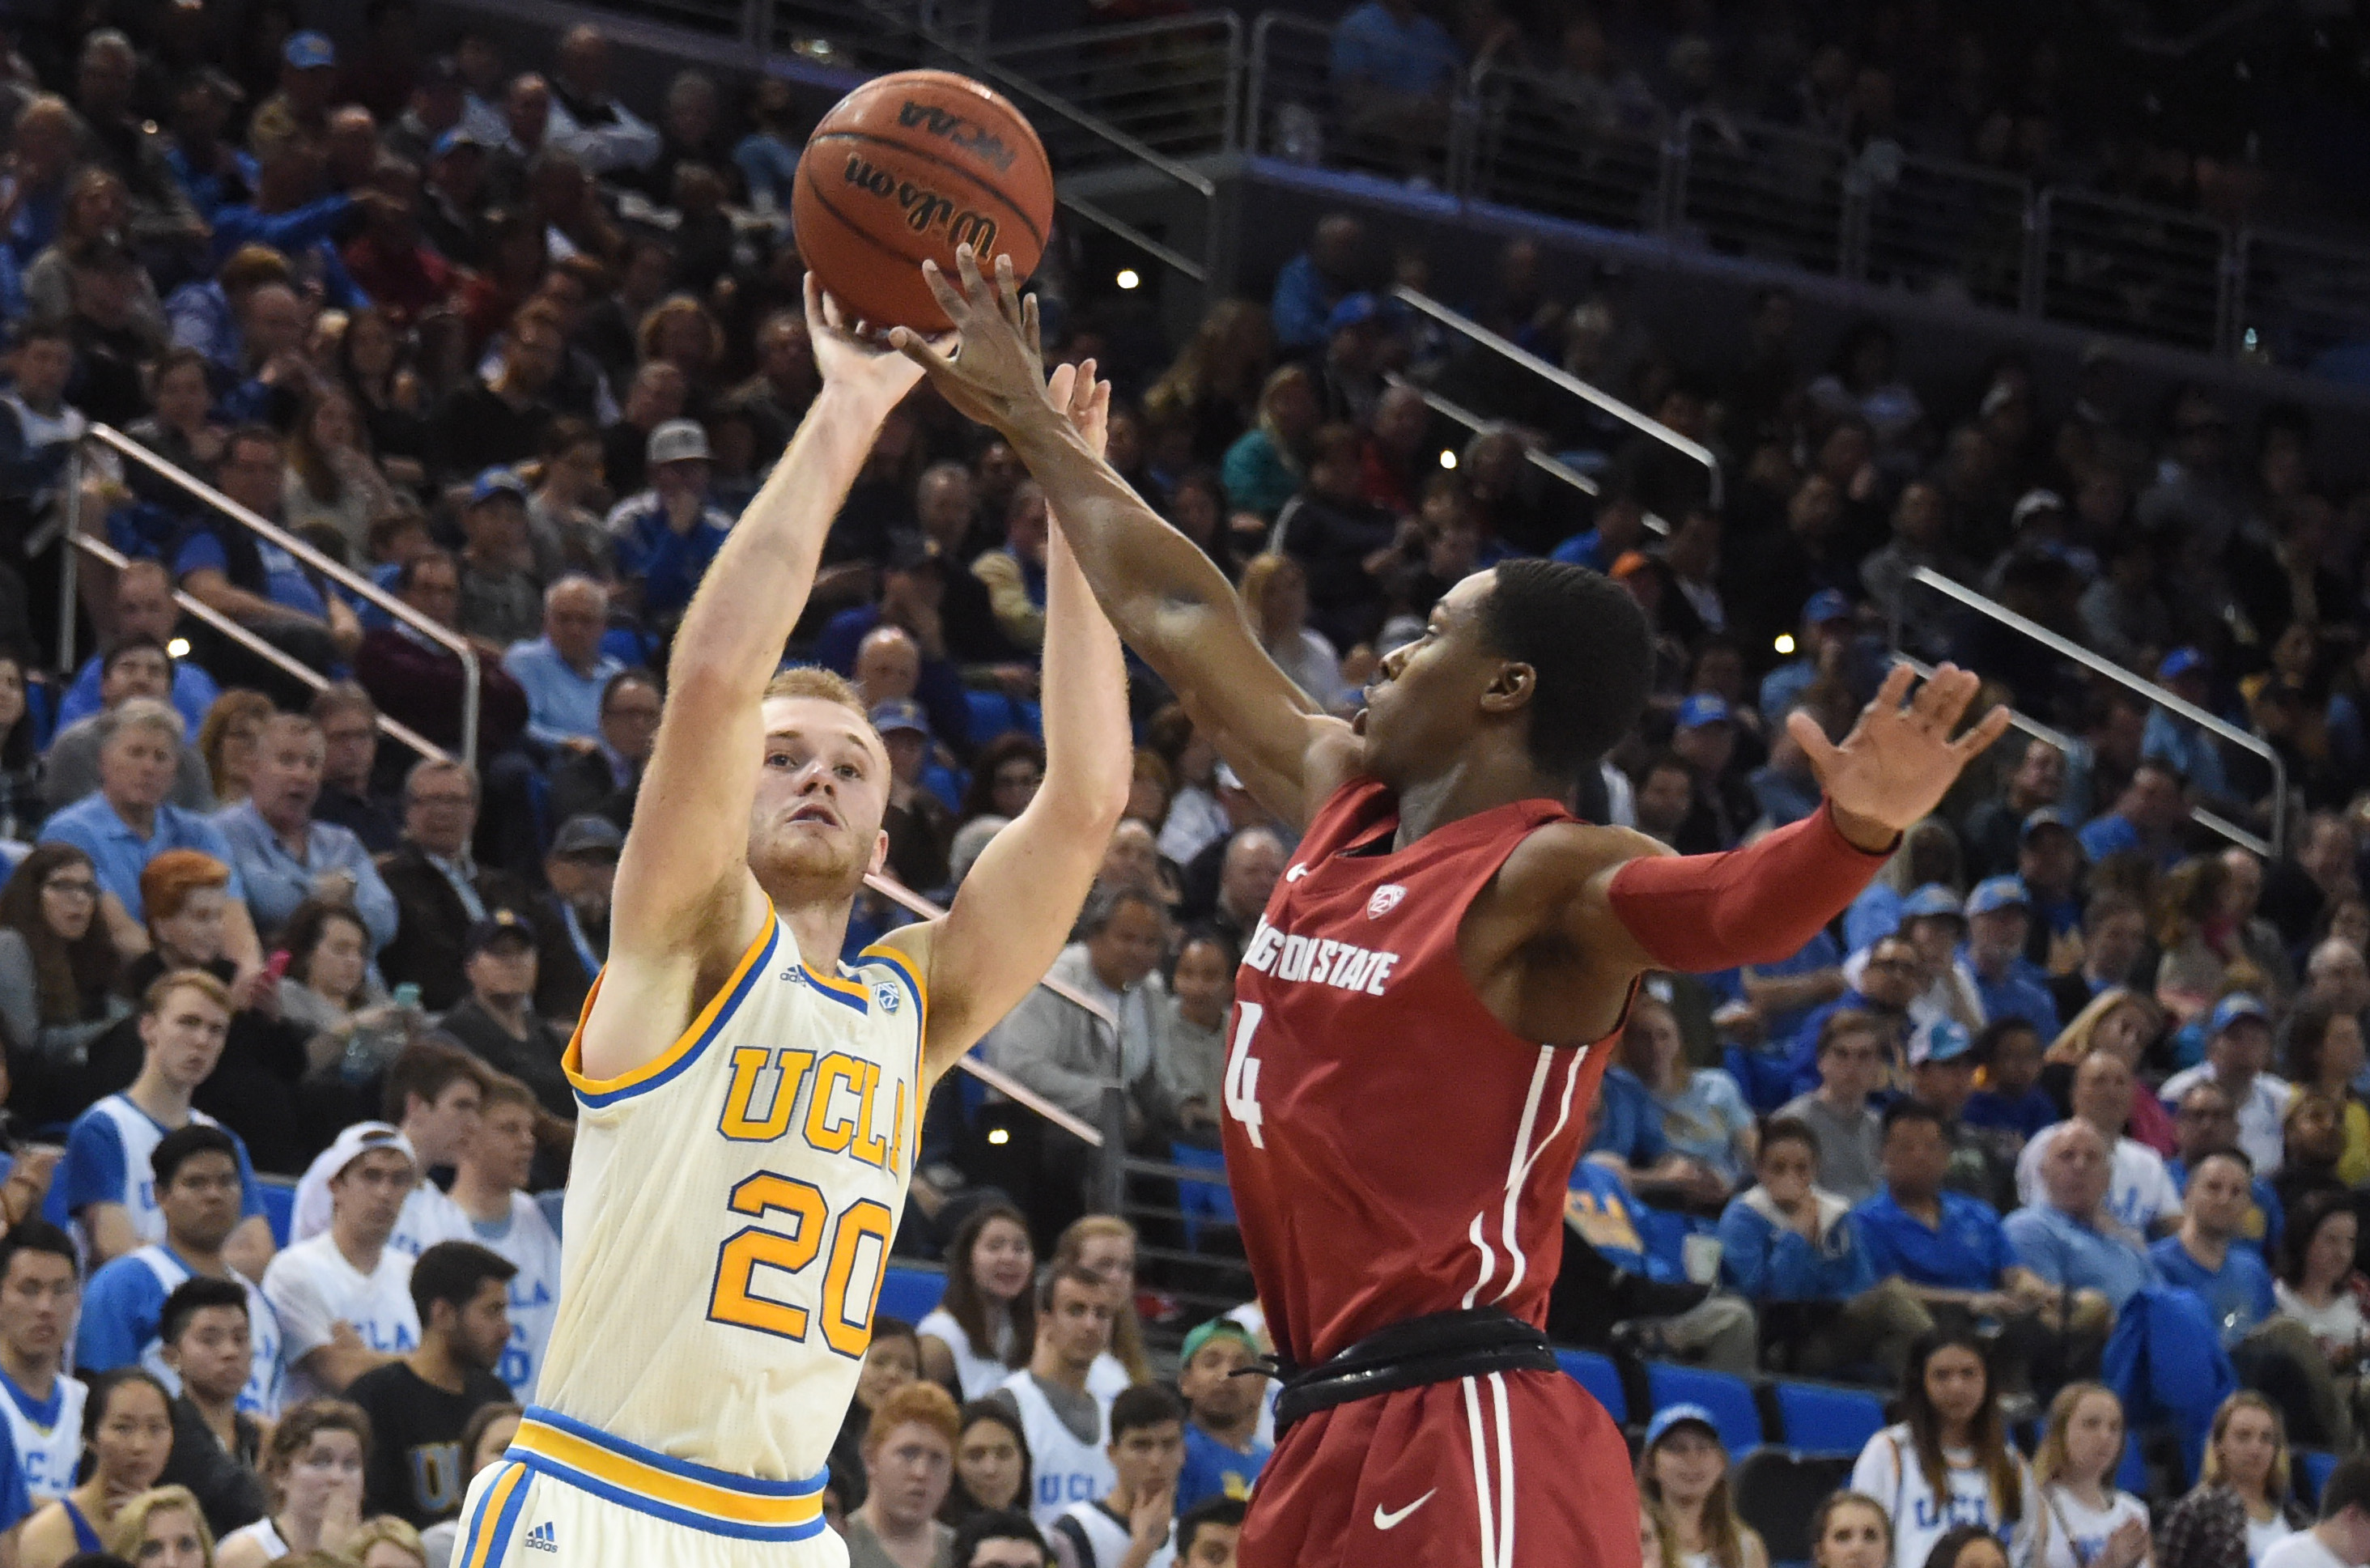 Bryce Alford will need to shoot better than he did against Arizona in the Pac-12 Tournament.